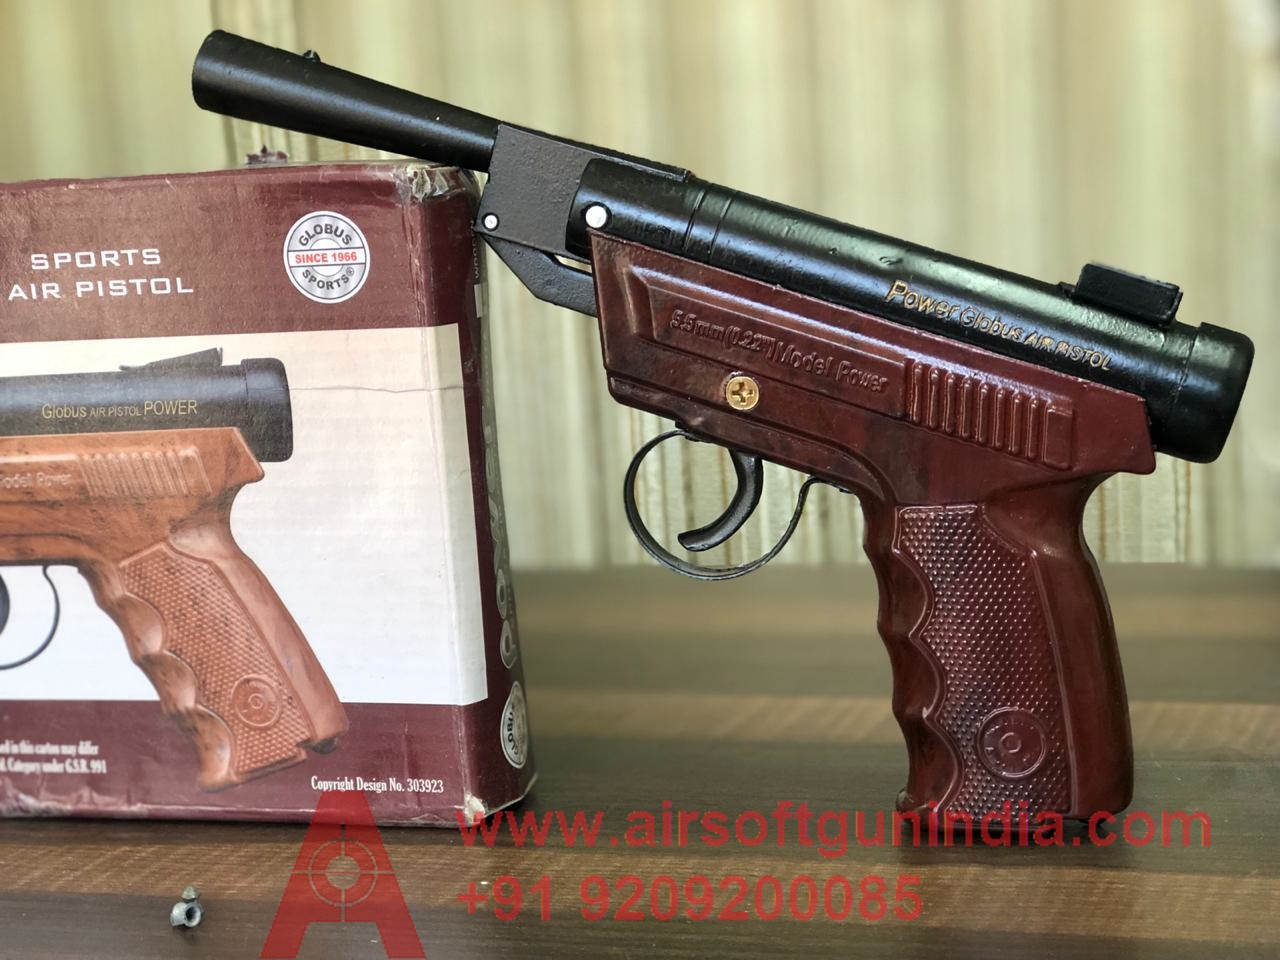 Power Sports Air Pistol By Airsoft Gun India Rose Texture